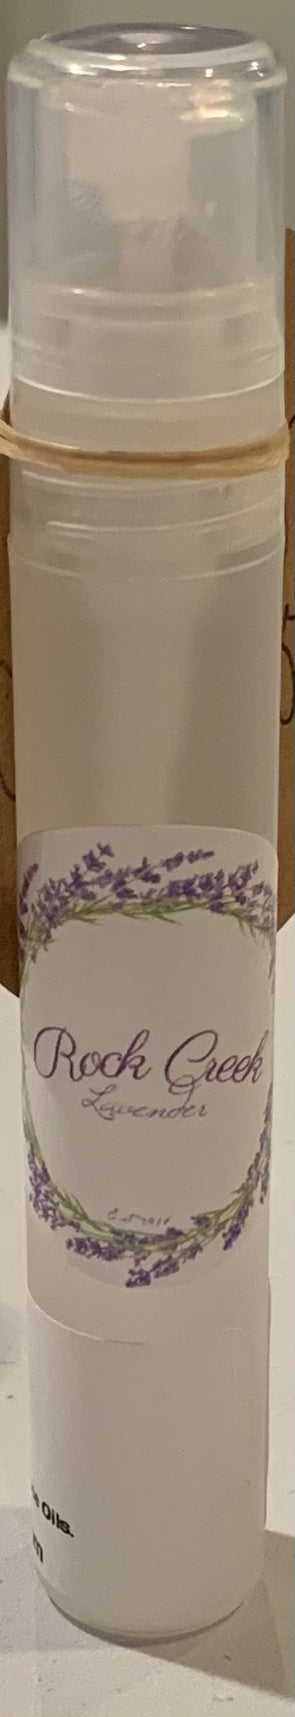 Lavender Sanitizing Spray